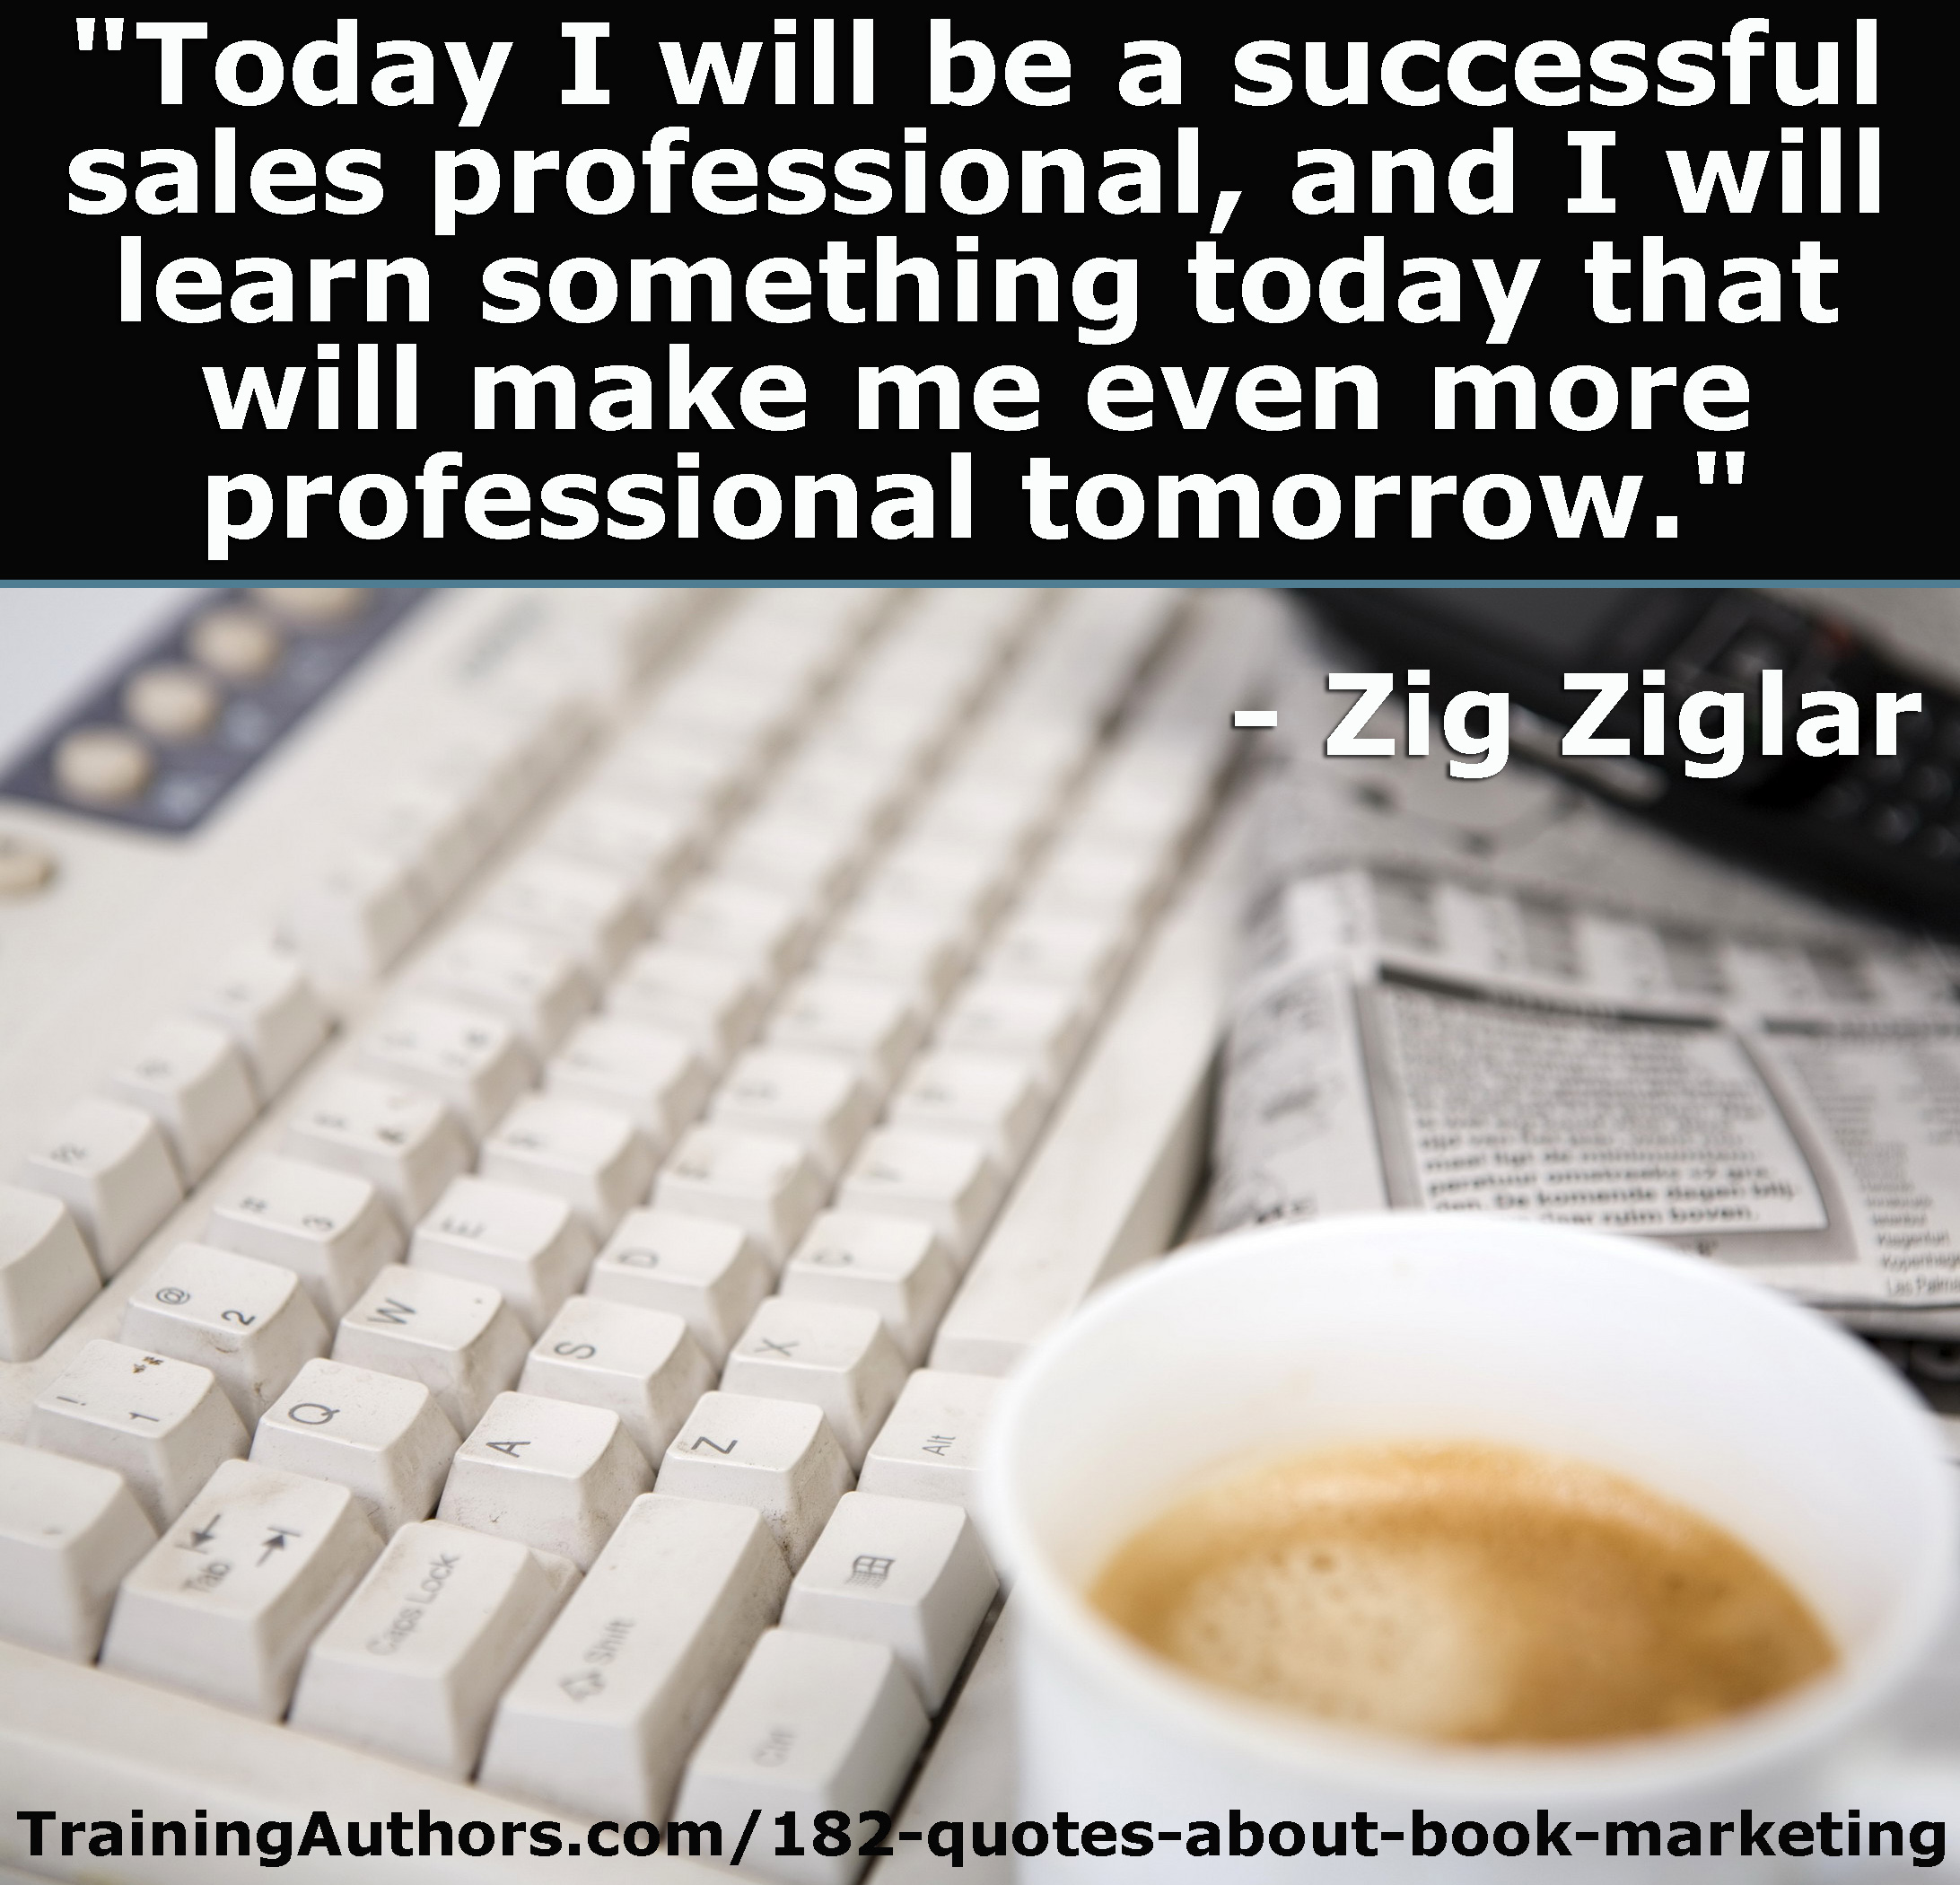 Professional Quotes 182 Quotes About Book Marketing  Training Authors For Success